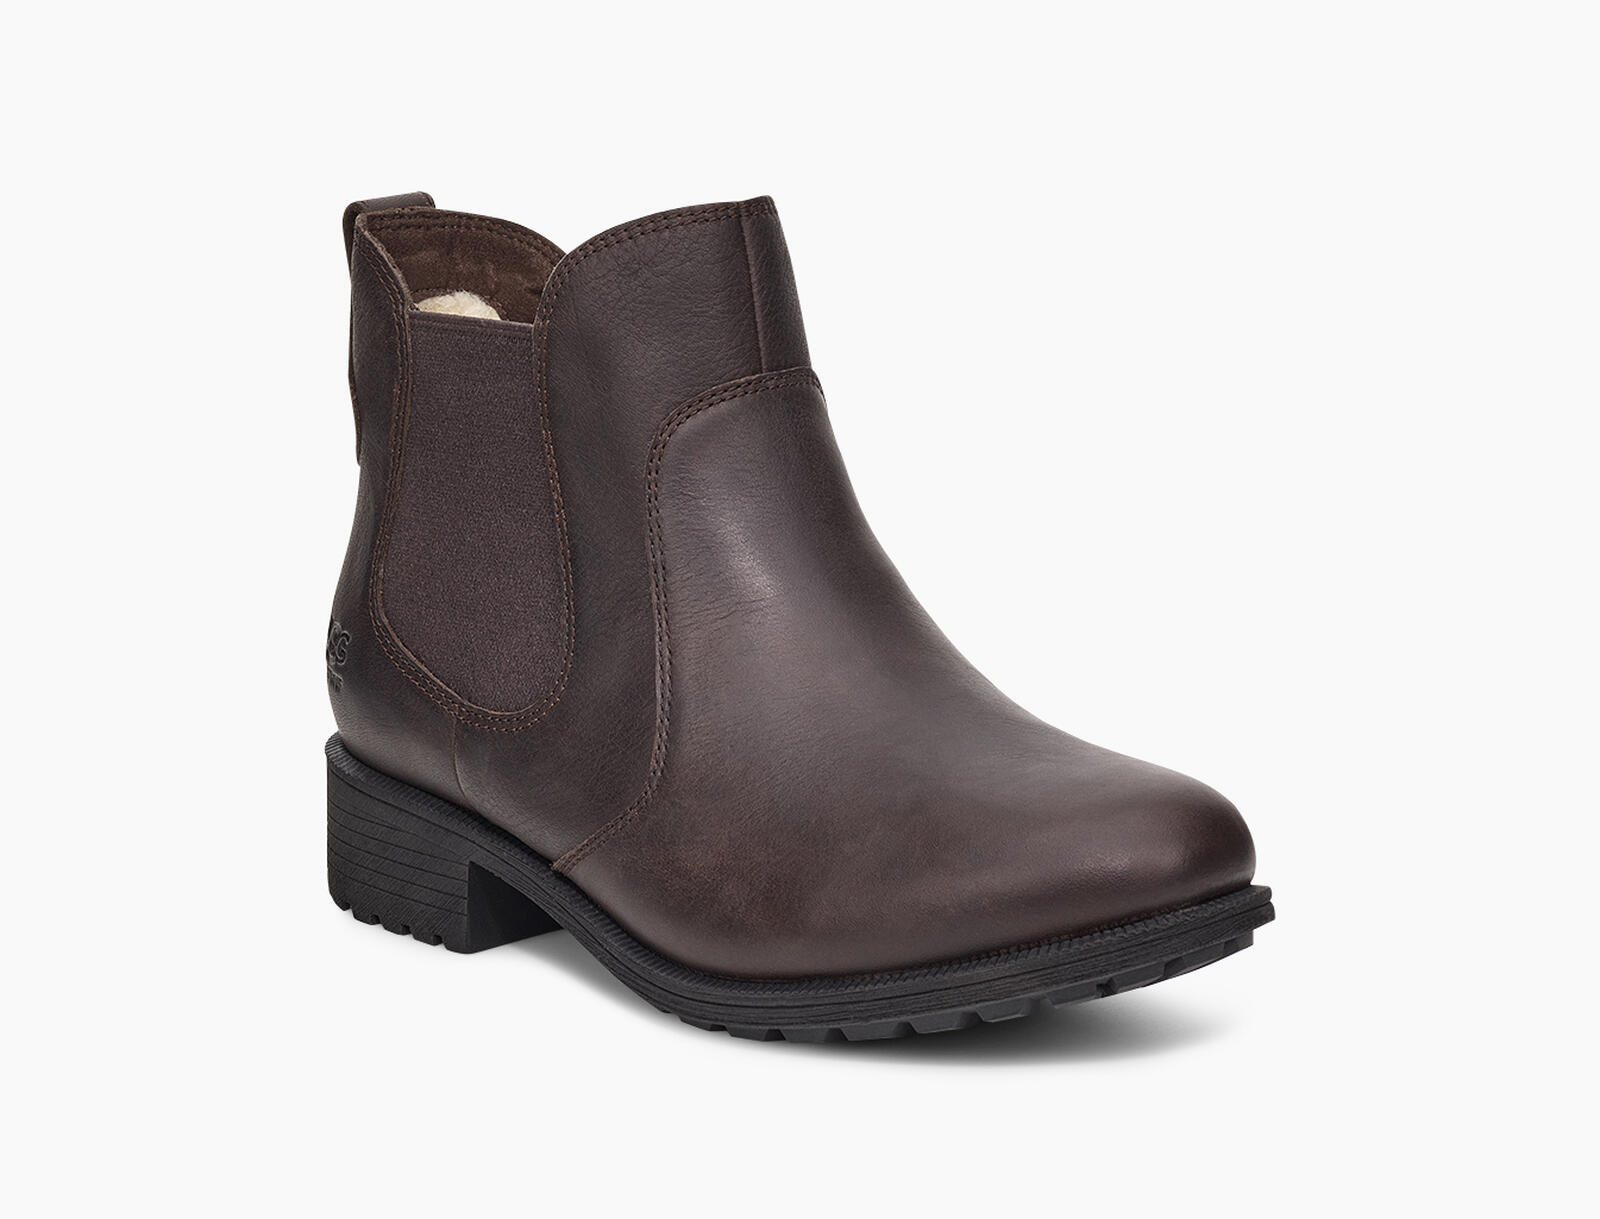 Bonham III Waterproof Chelsea Boot